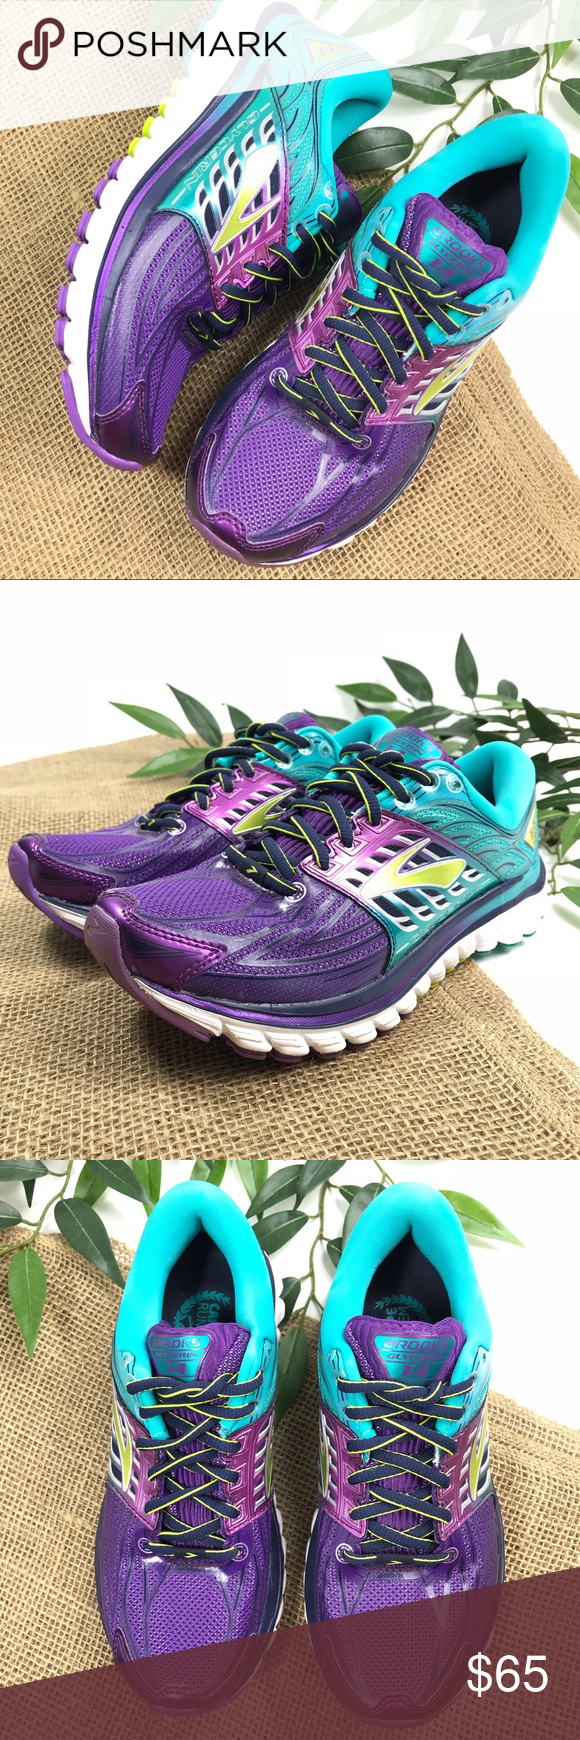 aec1f9e0ee8 Women s Brooks Glycerin 14 Purple Teal Carpe Runem  Brooks  Glycerin 14  Running Tennis Shoe 6 Carpe Runem new without box. These are Brooks brand  running ...